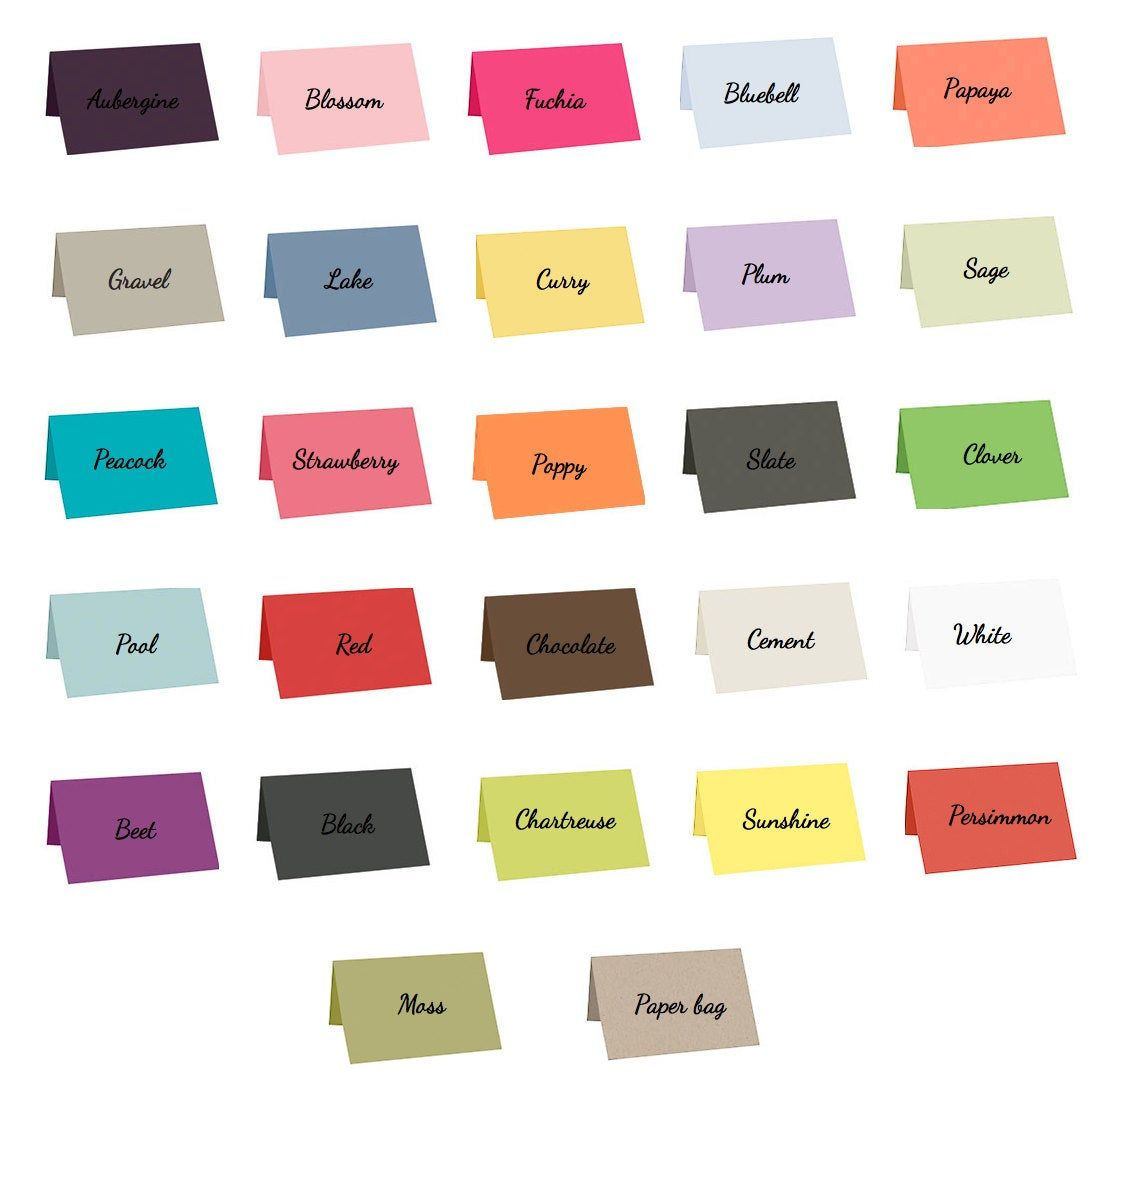 The Stunning 28 Paper Source Templates Place Cards Printable Place Throughout Pape Printable Place Cards Templates Printable Cards Printable Place Cards